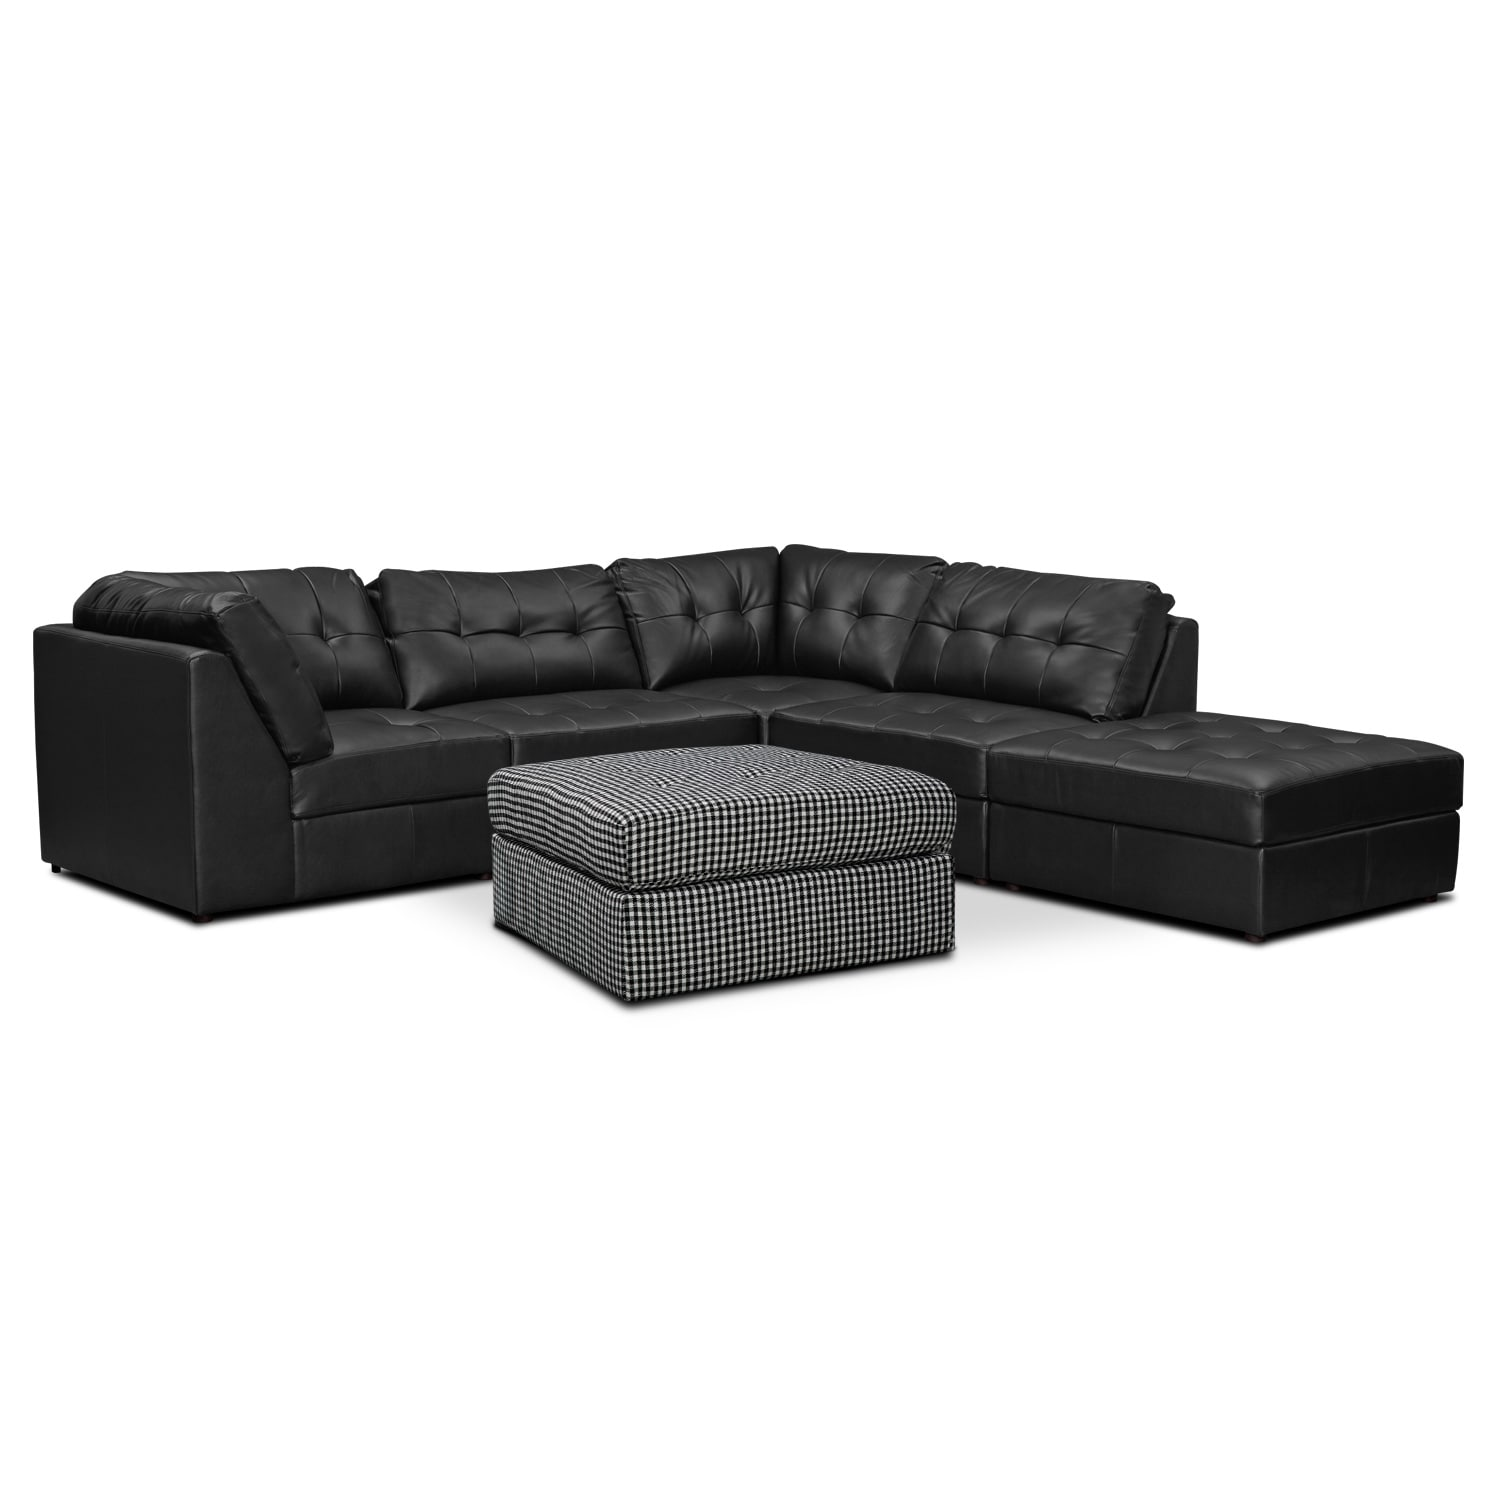 [Aventura 6 Pc. Sectional]